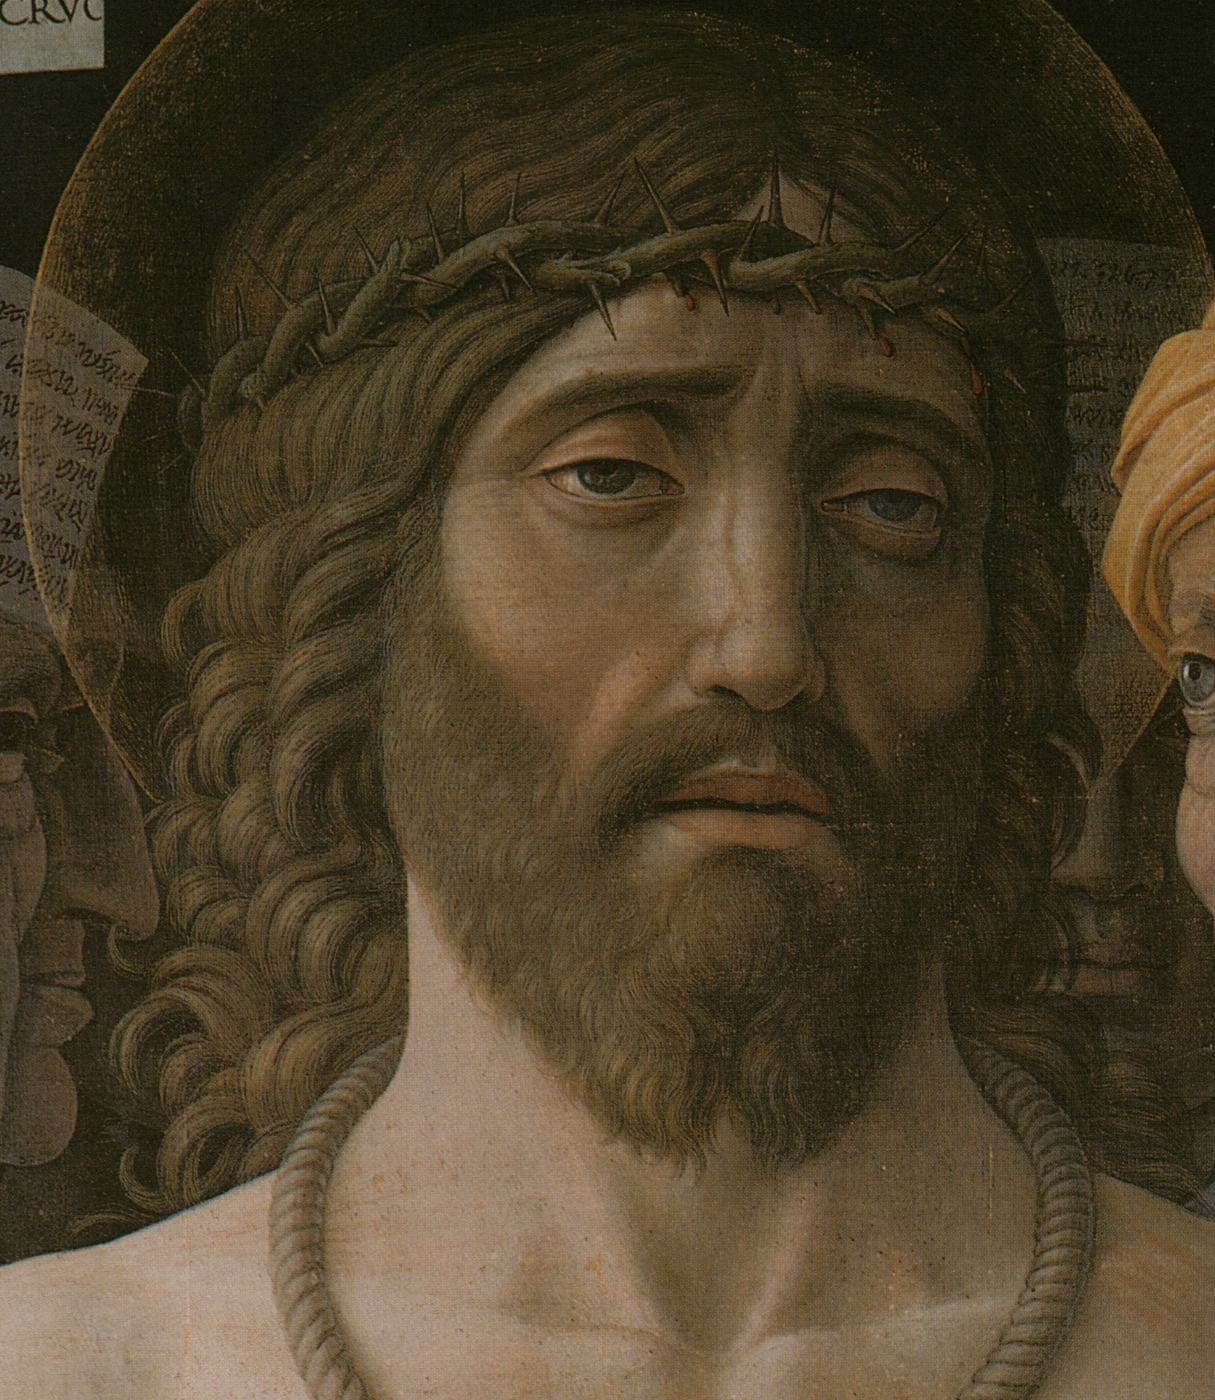 So while durer was explaining how he as an artist can become christ in